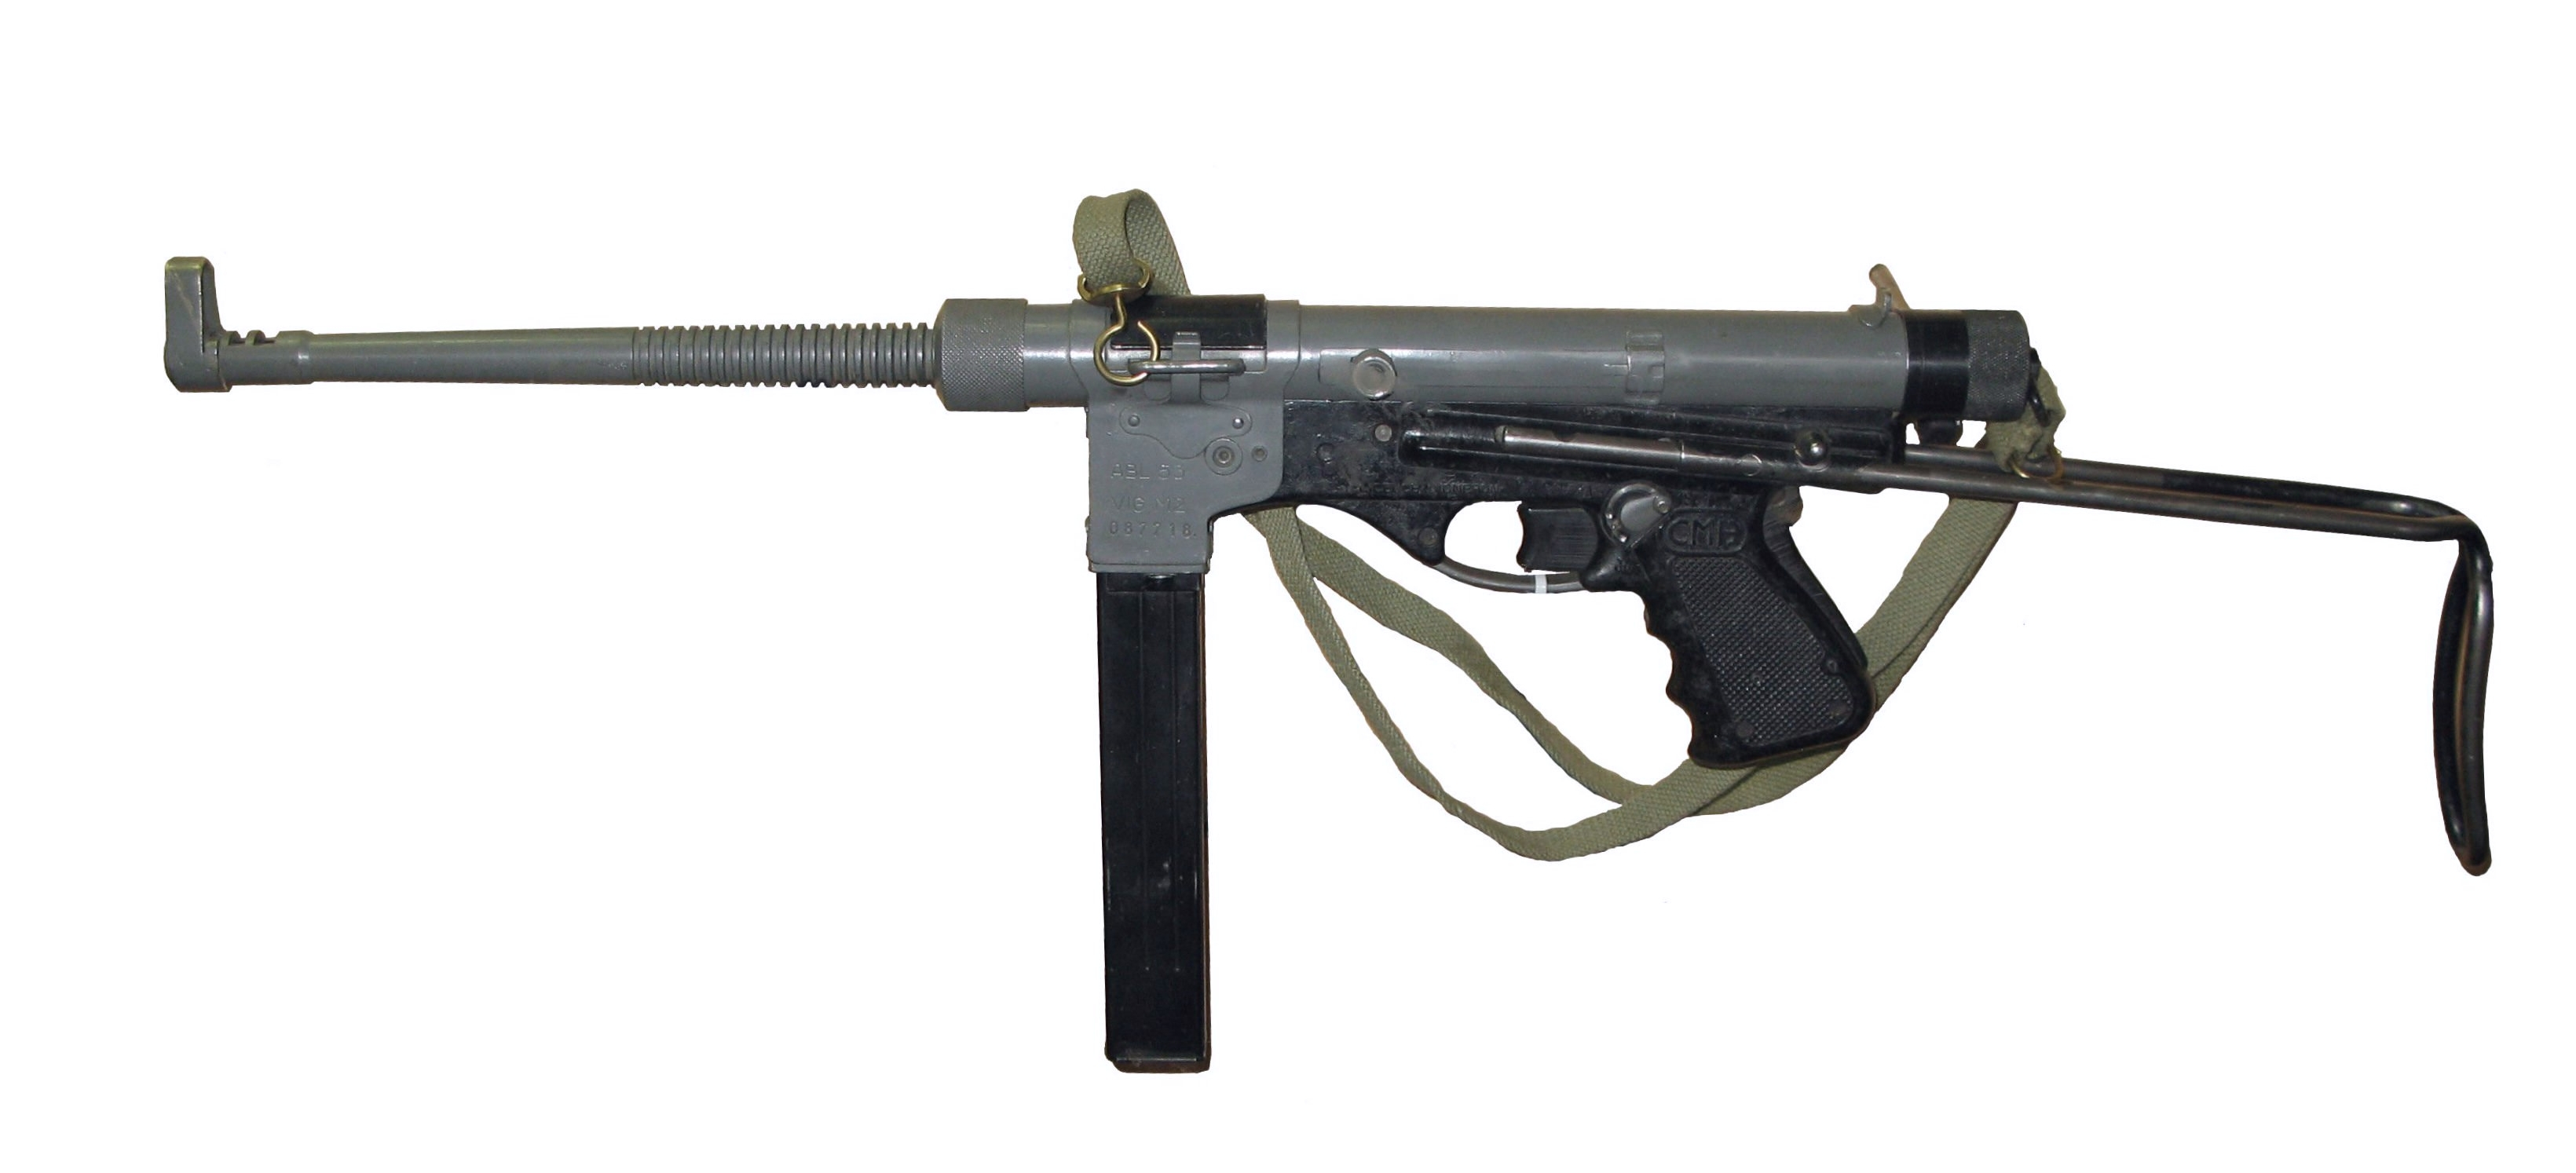 File:Vigneron machine gun IMG 1529nc.jpg - Wikipedia, the free ...